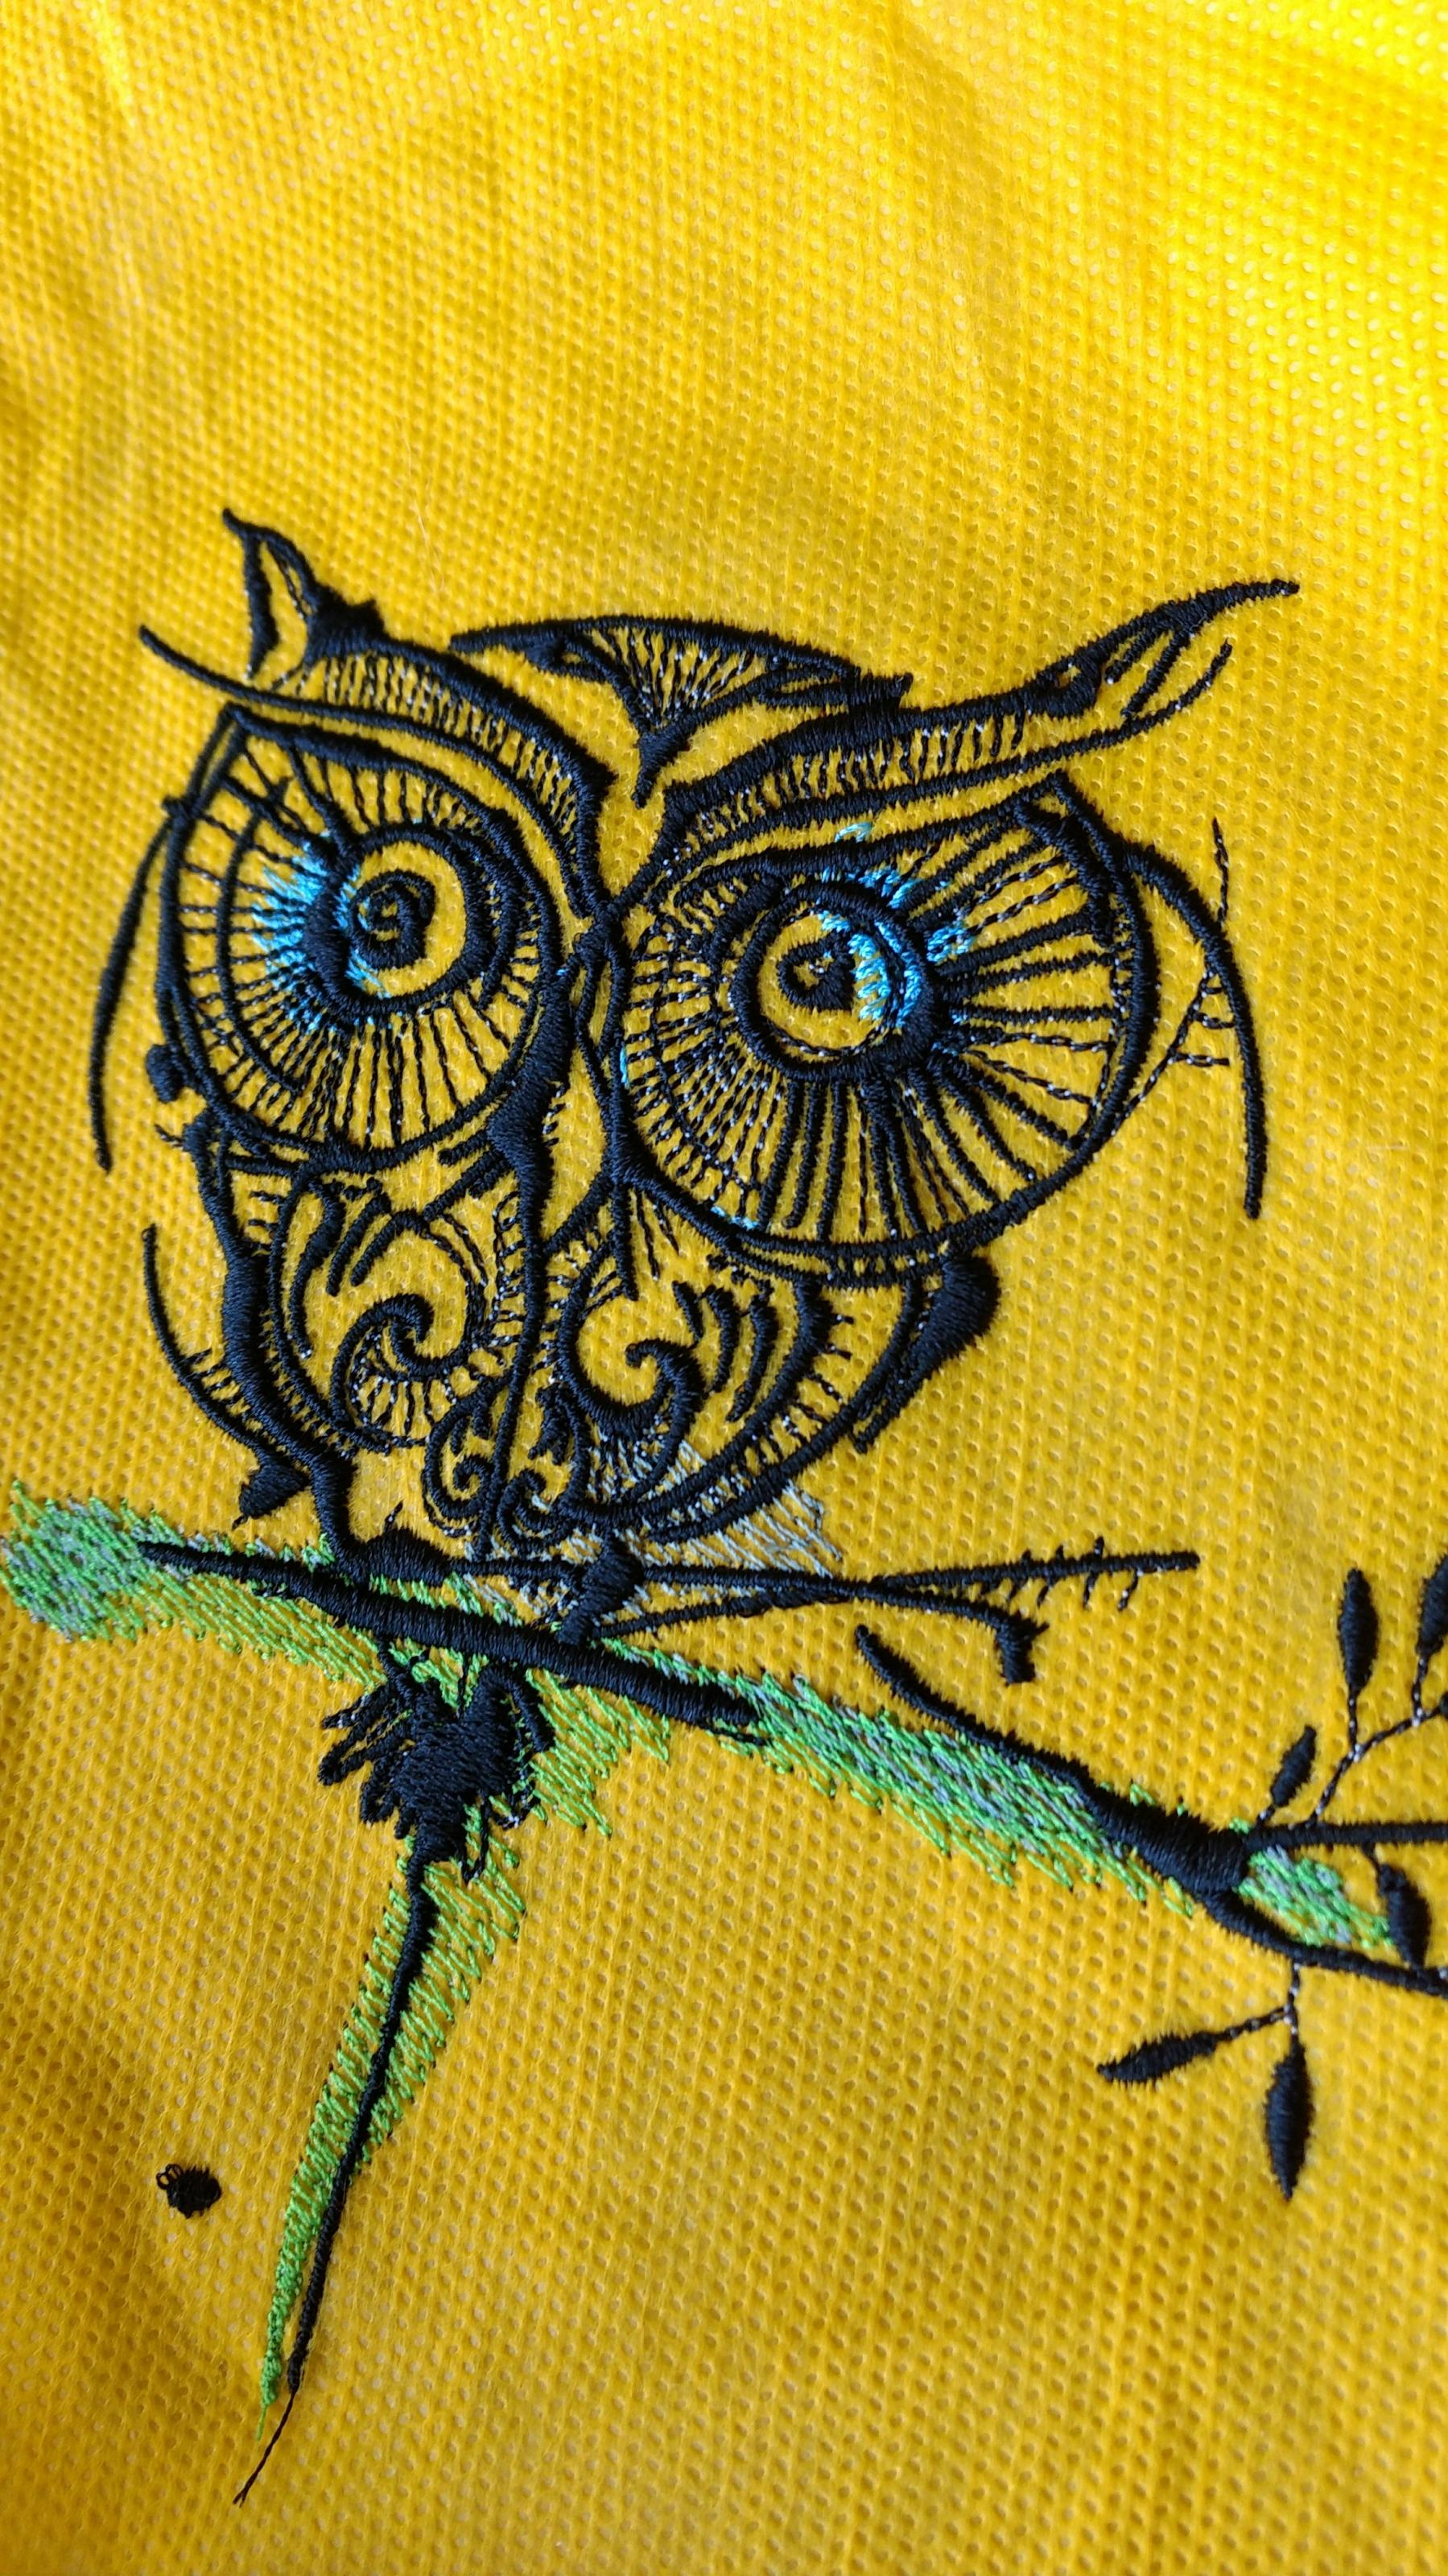 Big Eyes Owl Embroidery Design Showcase With Fauna Embroidery